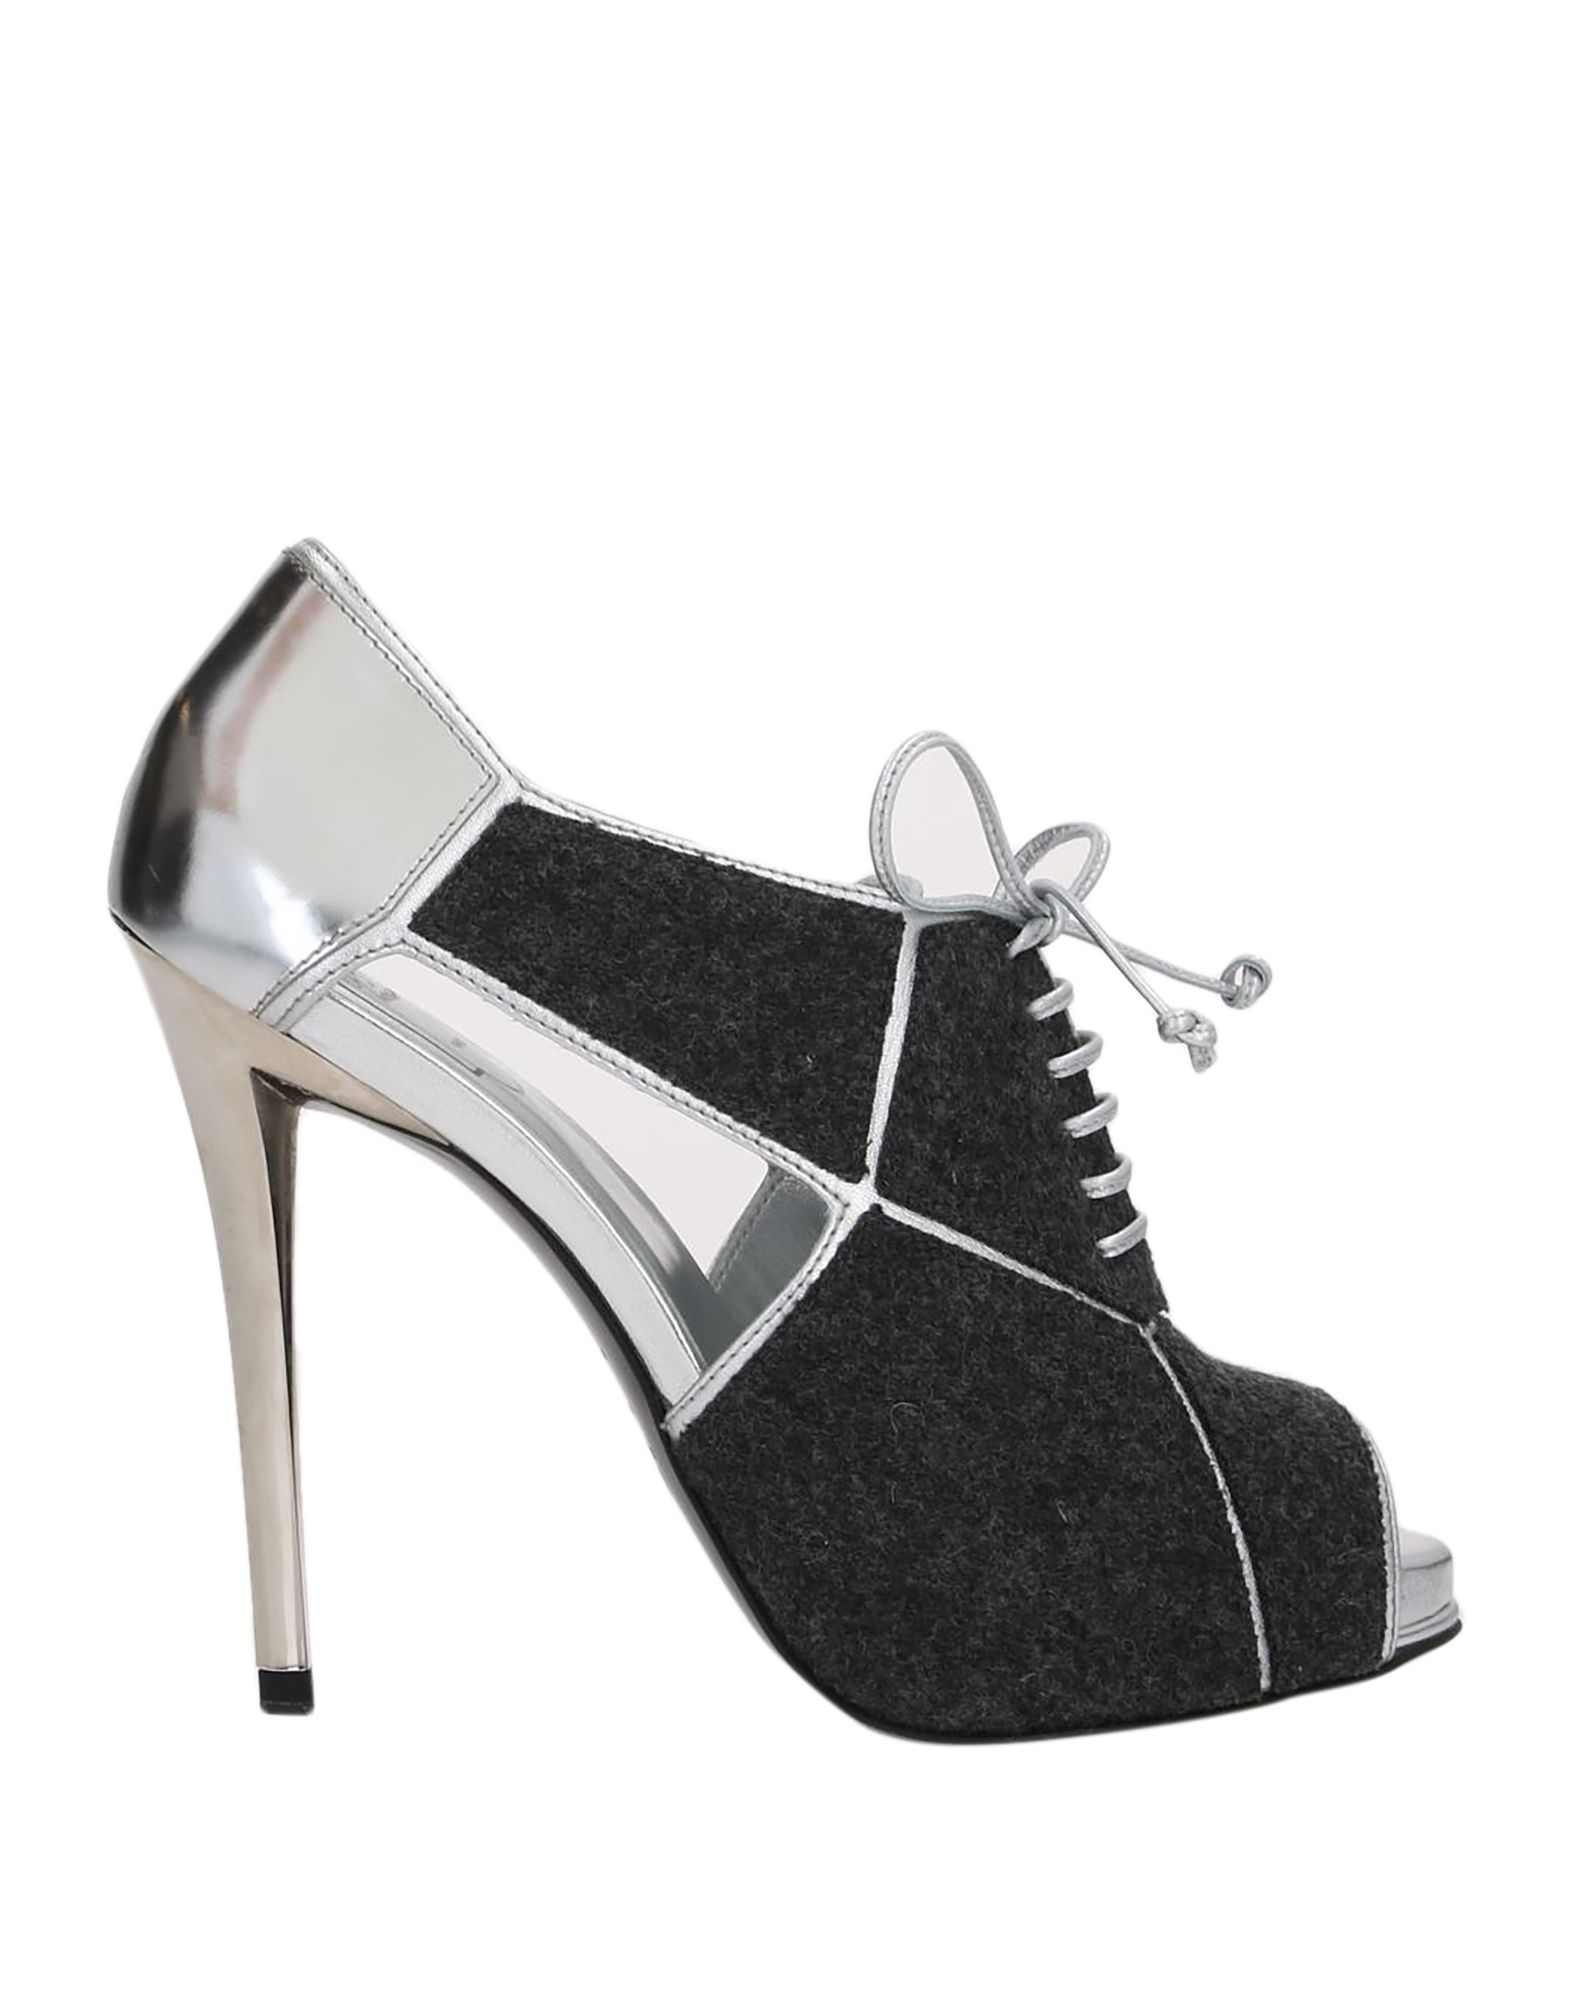 ROGER VIVIER Lace-up shoes. laminated effect, flannel, no appliqués, two-tone, open toe, spike heel, leather lining, leather sole, contains non-textile parts of animal origin. Soft Leather, Textile fibers